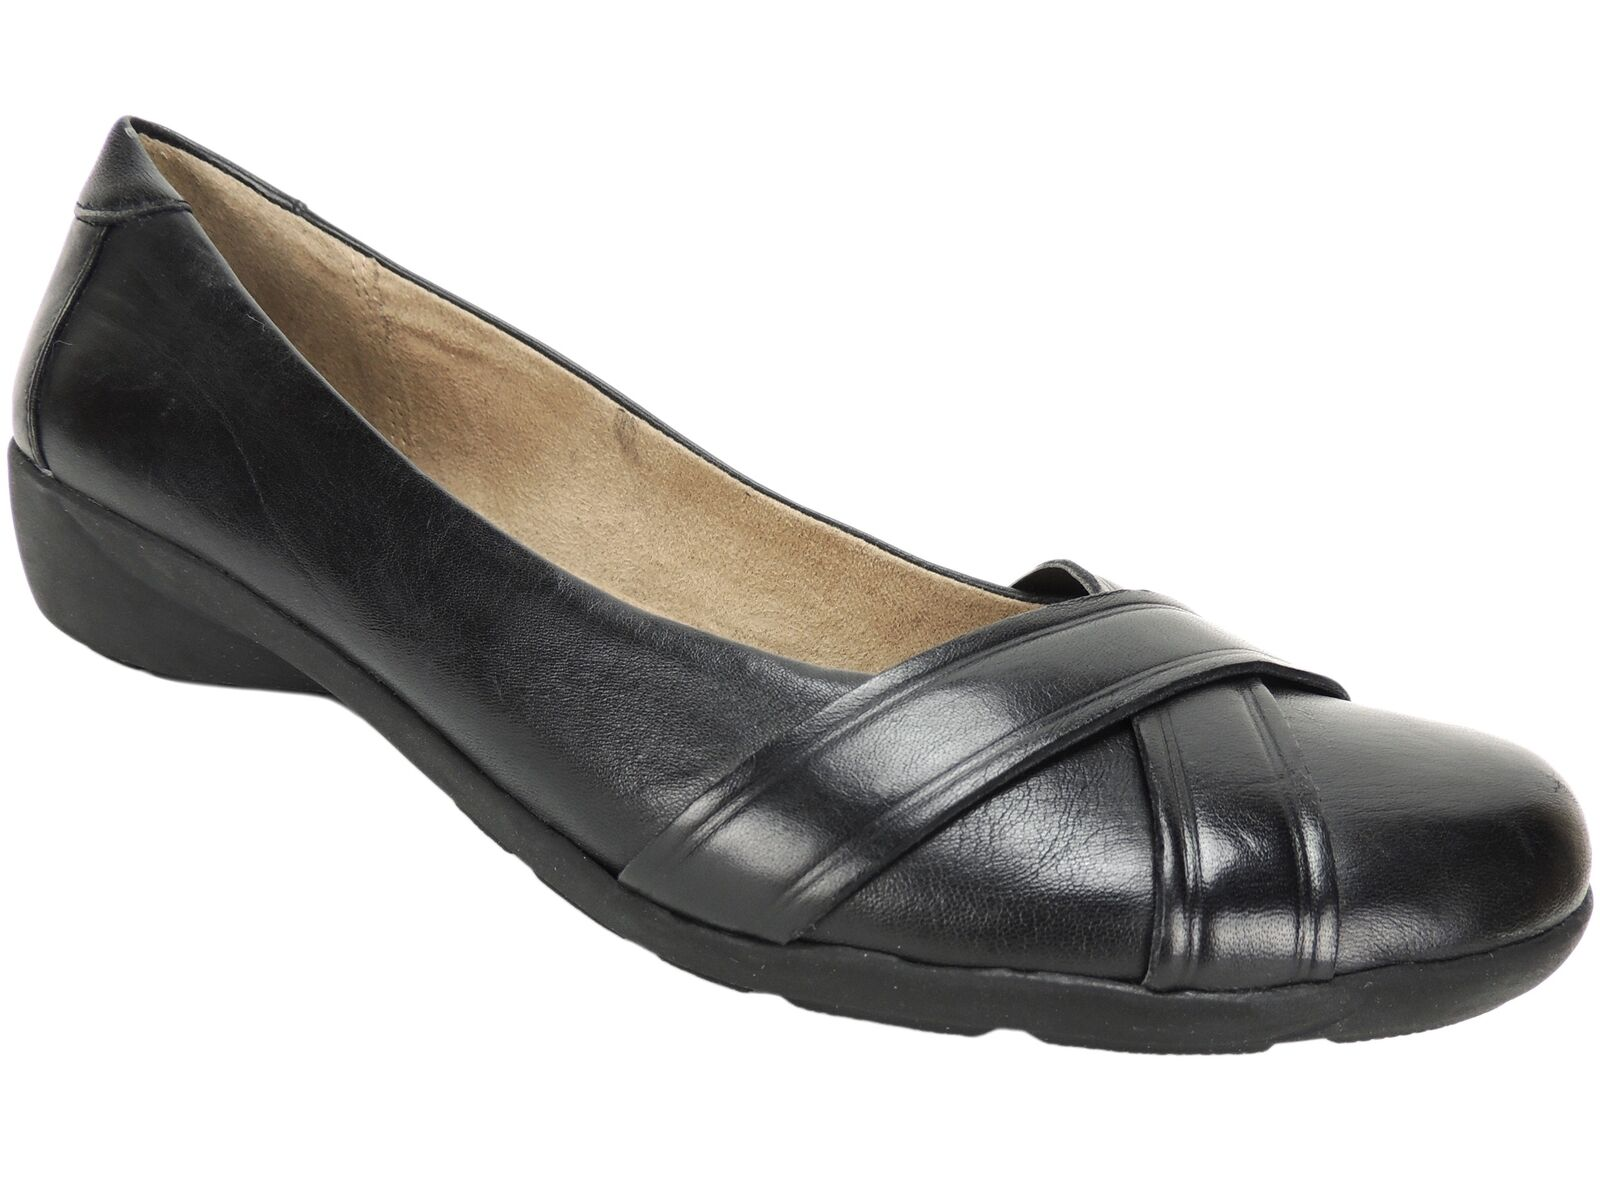 Naturalizer Women's Nariko Slip-On Loafers Loafers Loafers Black Size 8.5 M a7dde3